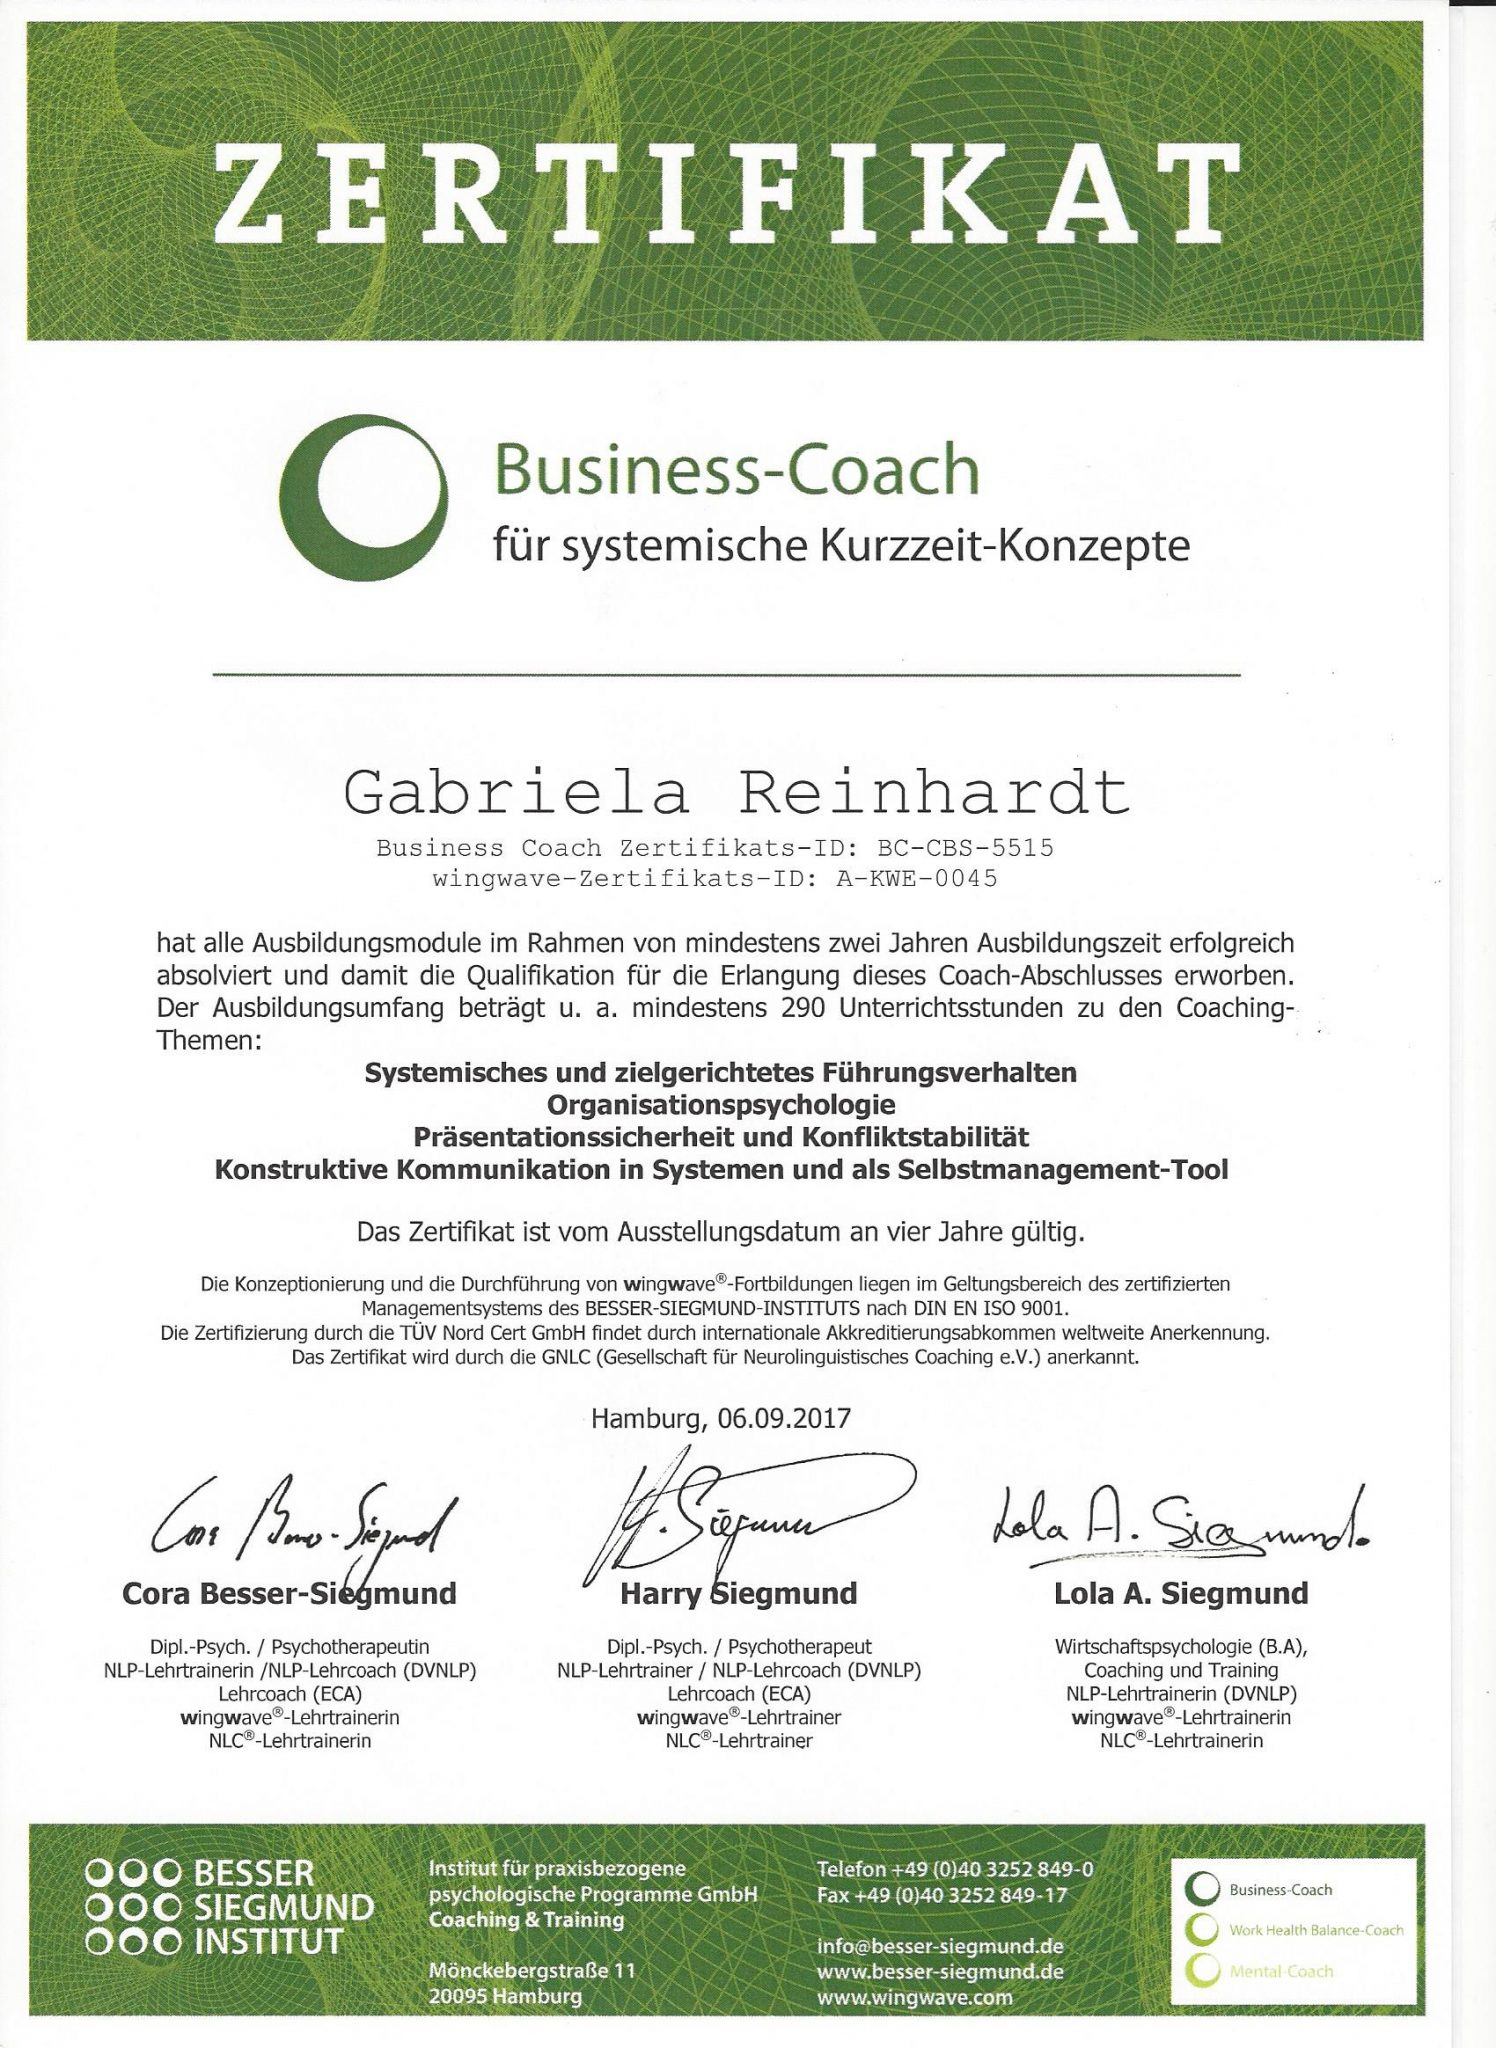 Zertifikat Business-Coach